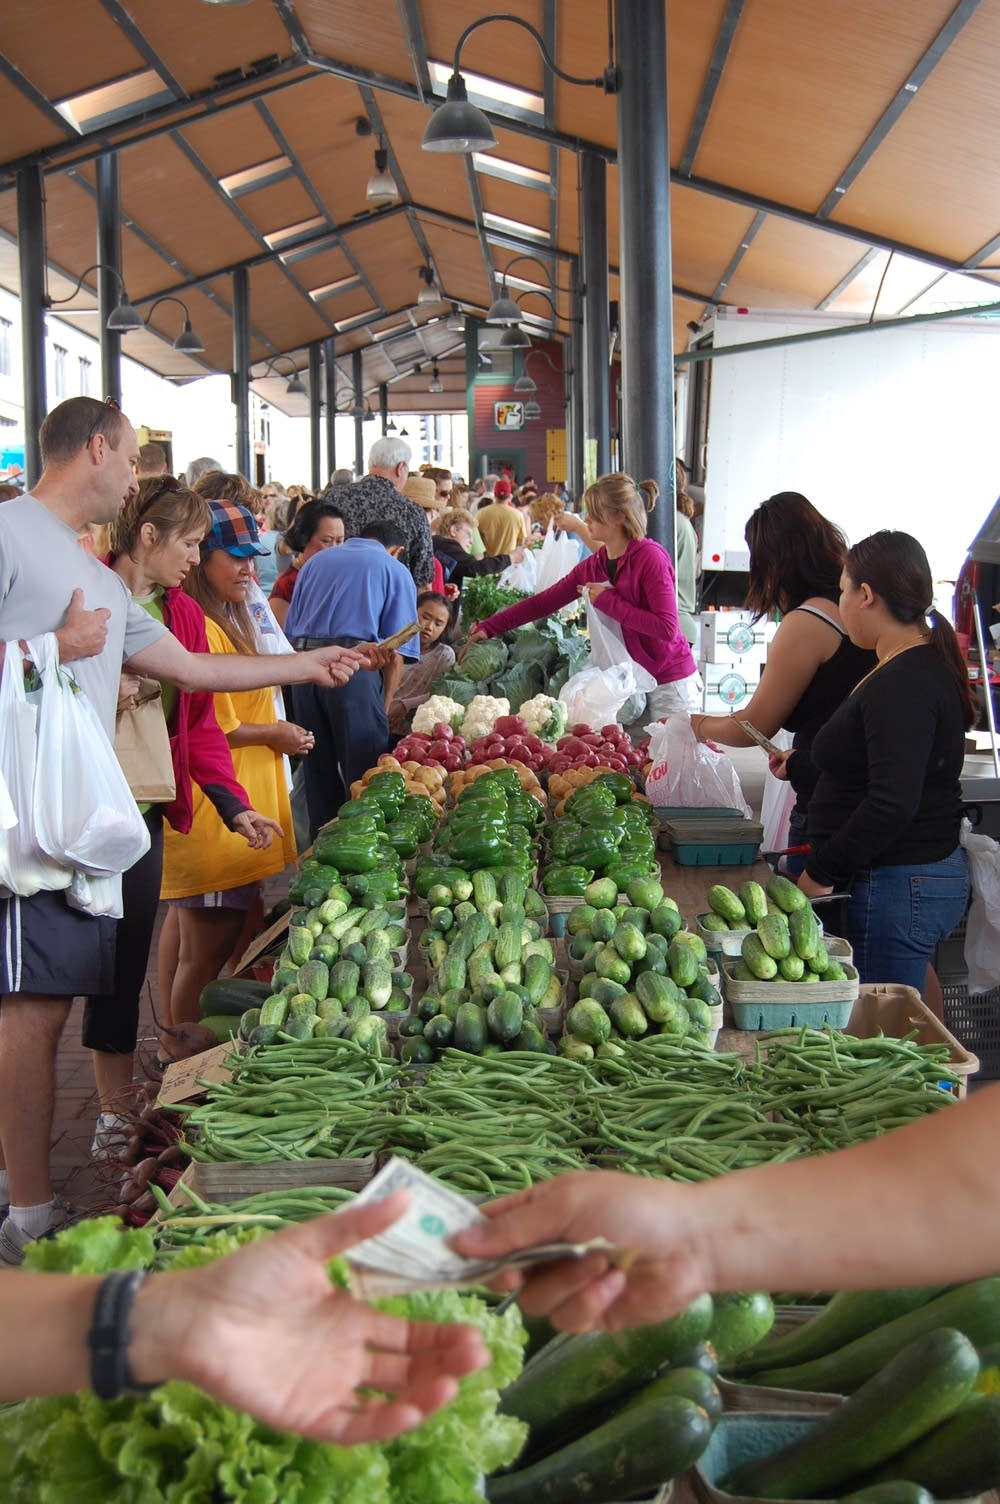 Transaction at the St. Paul farmers' market